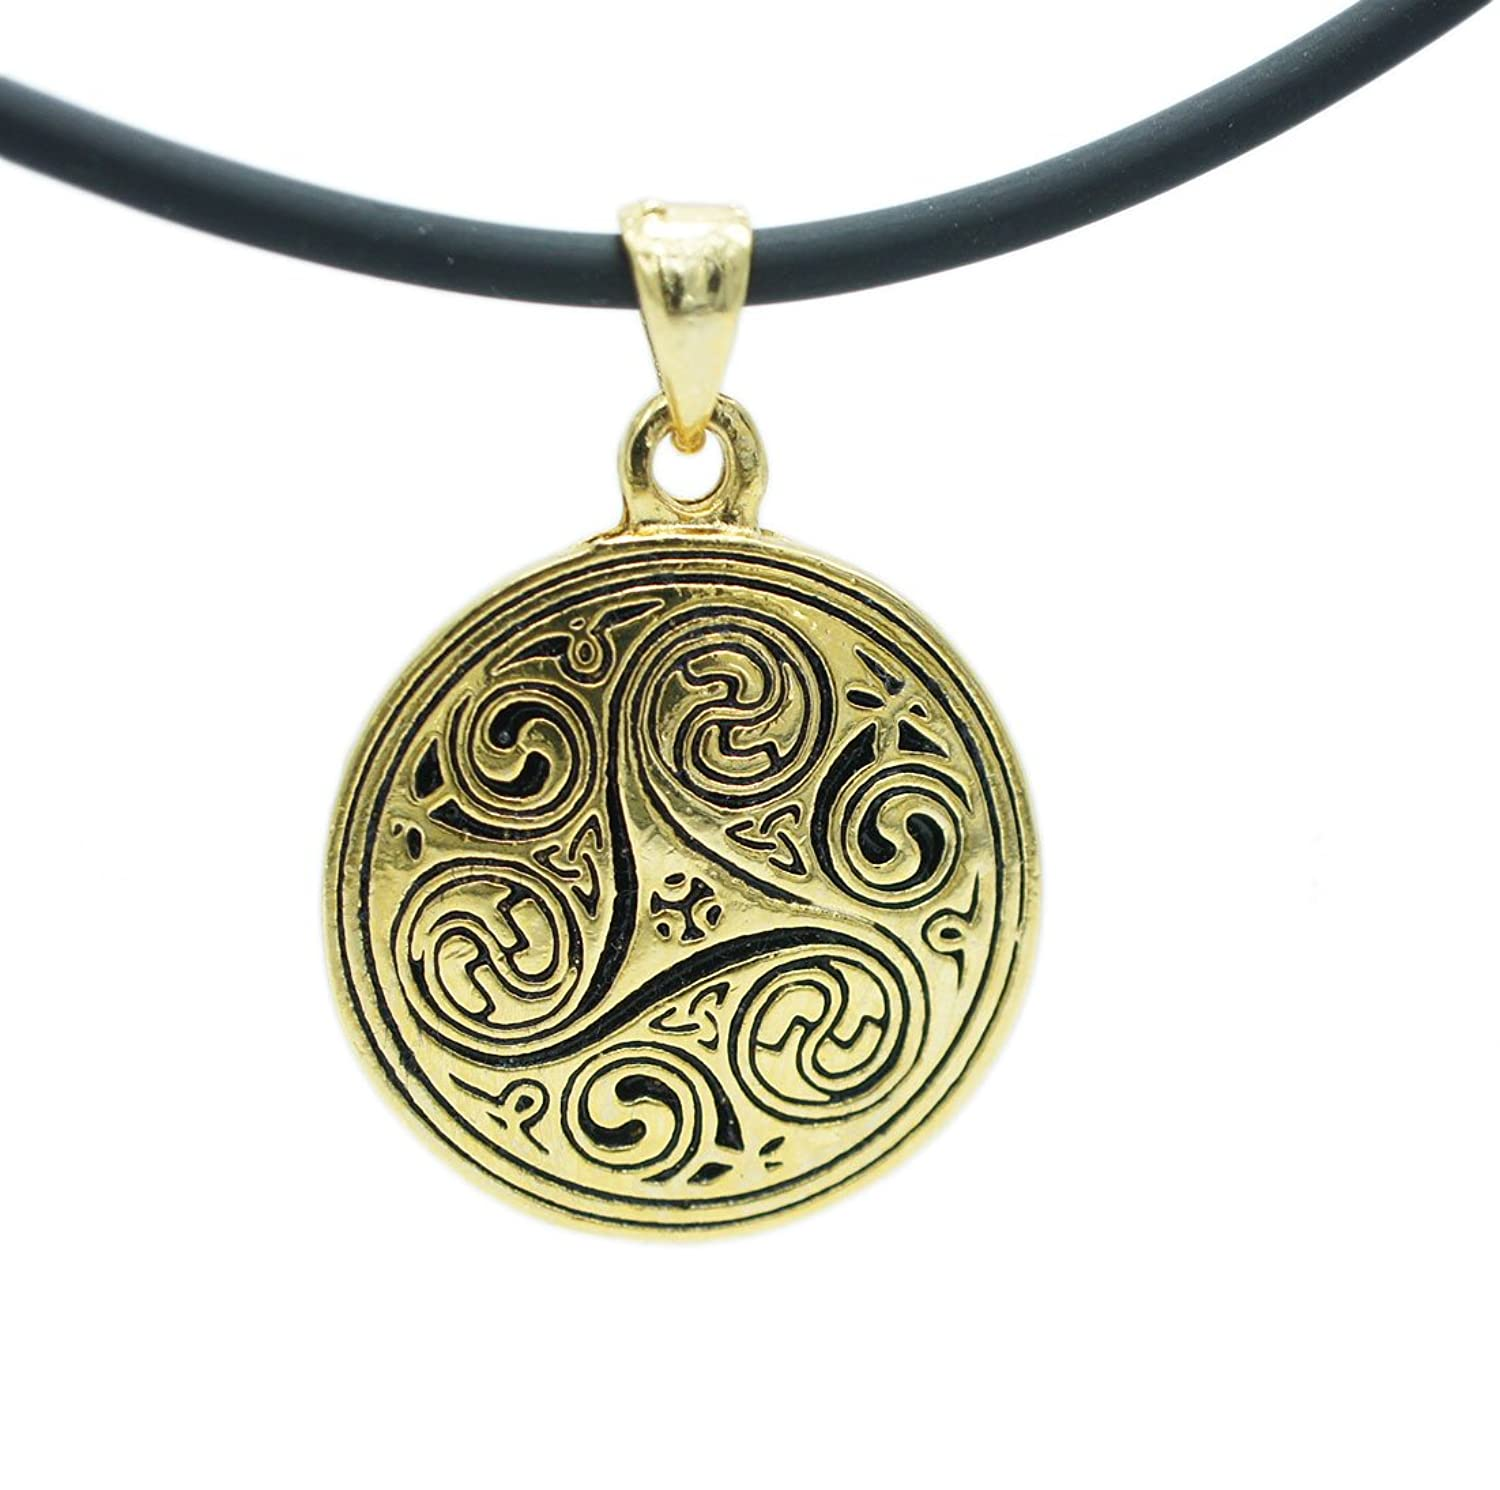 merlin pewter trinity you can celtic pendant triskelion pin pagan morgana find triskele triquetra